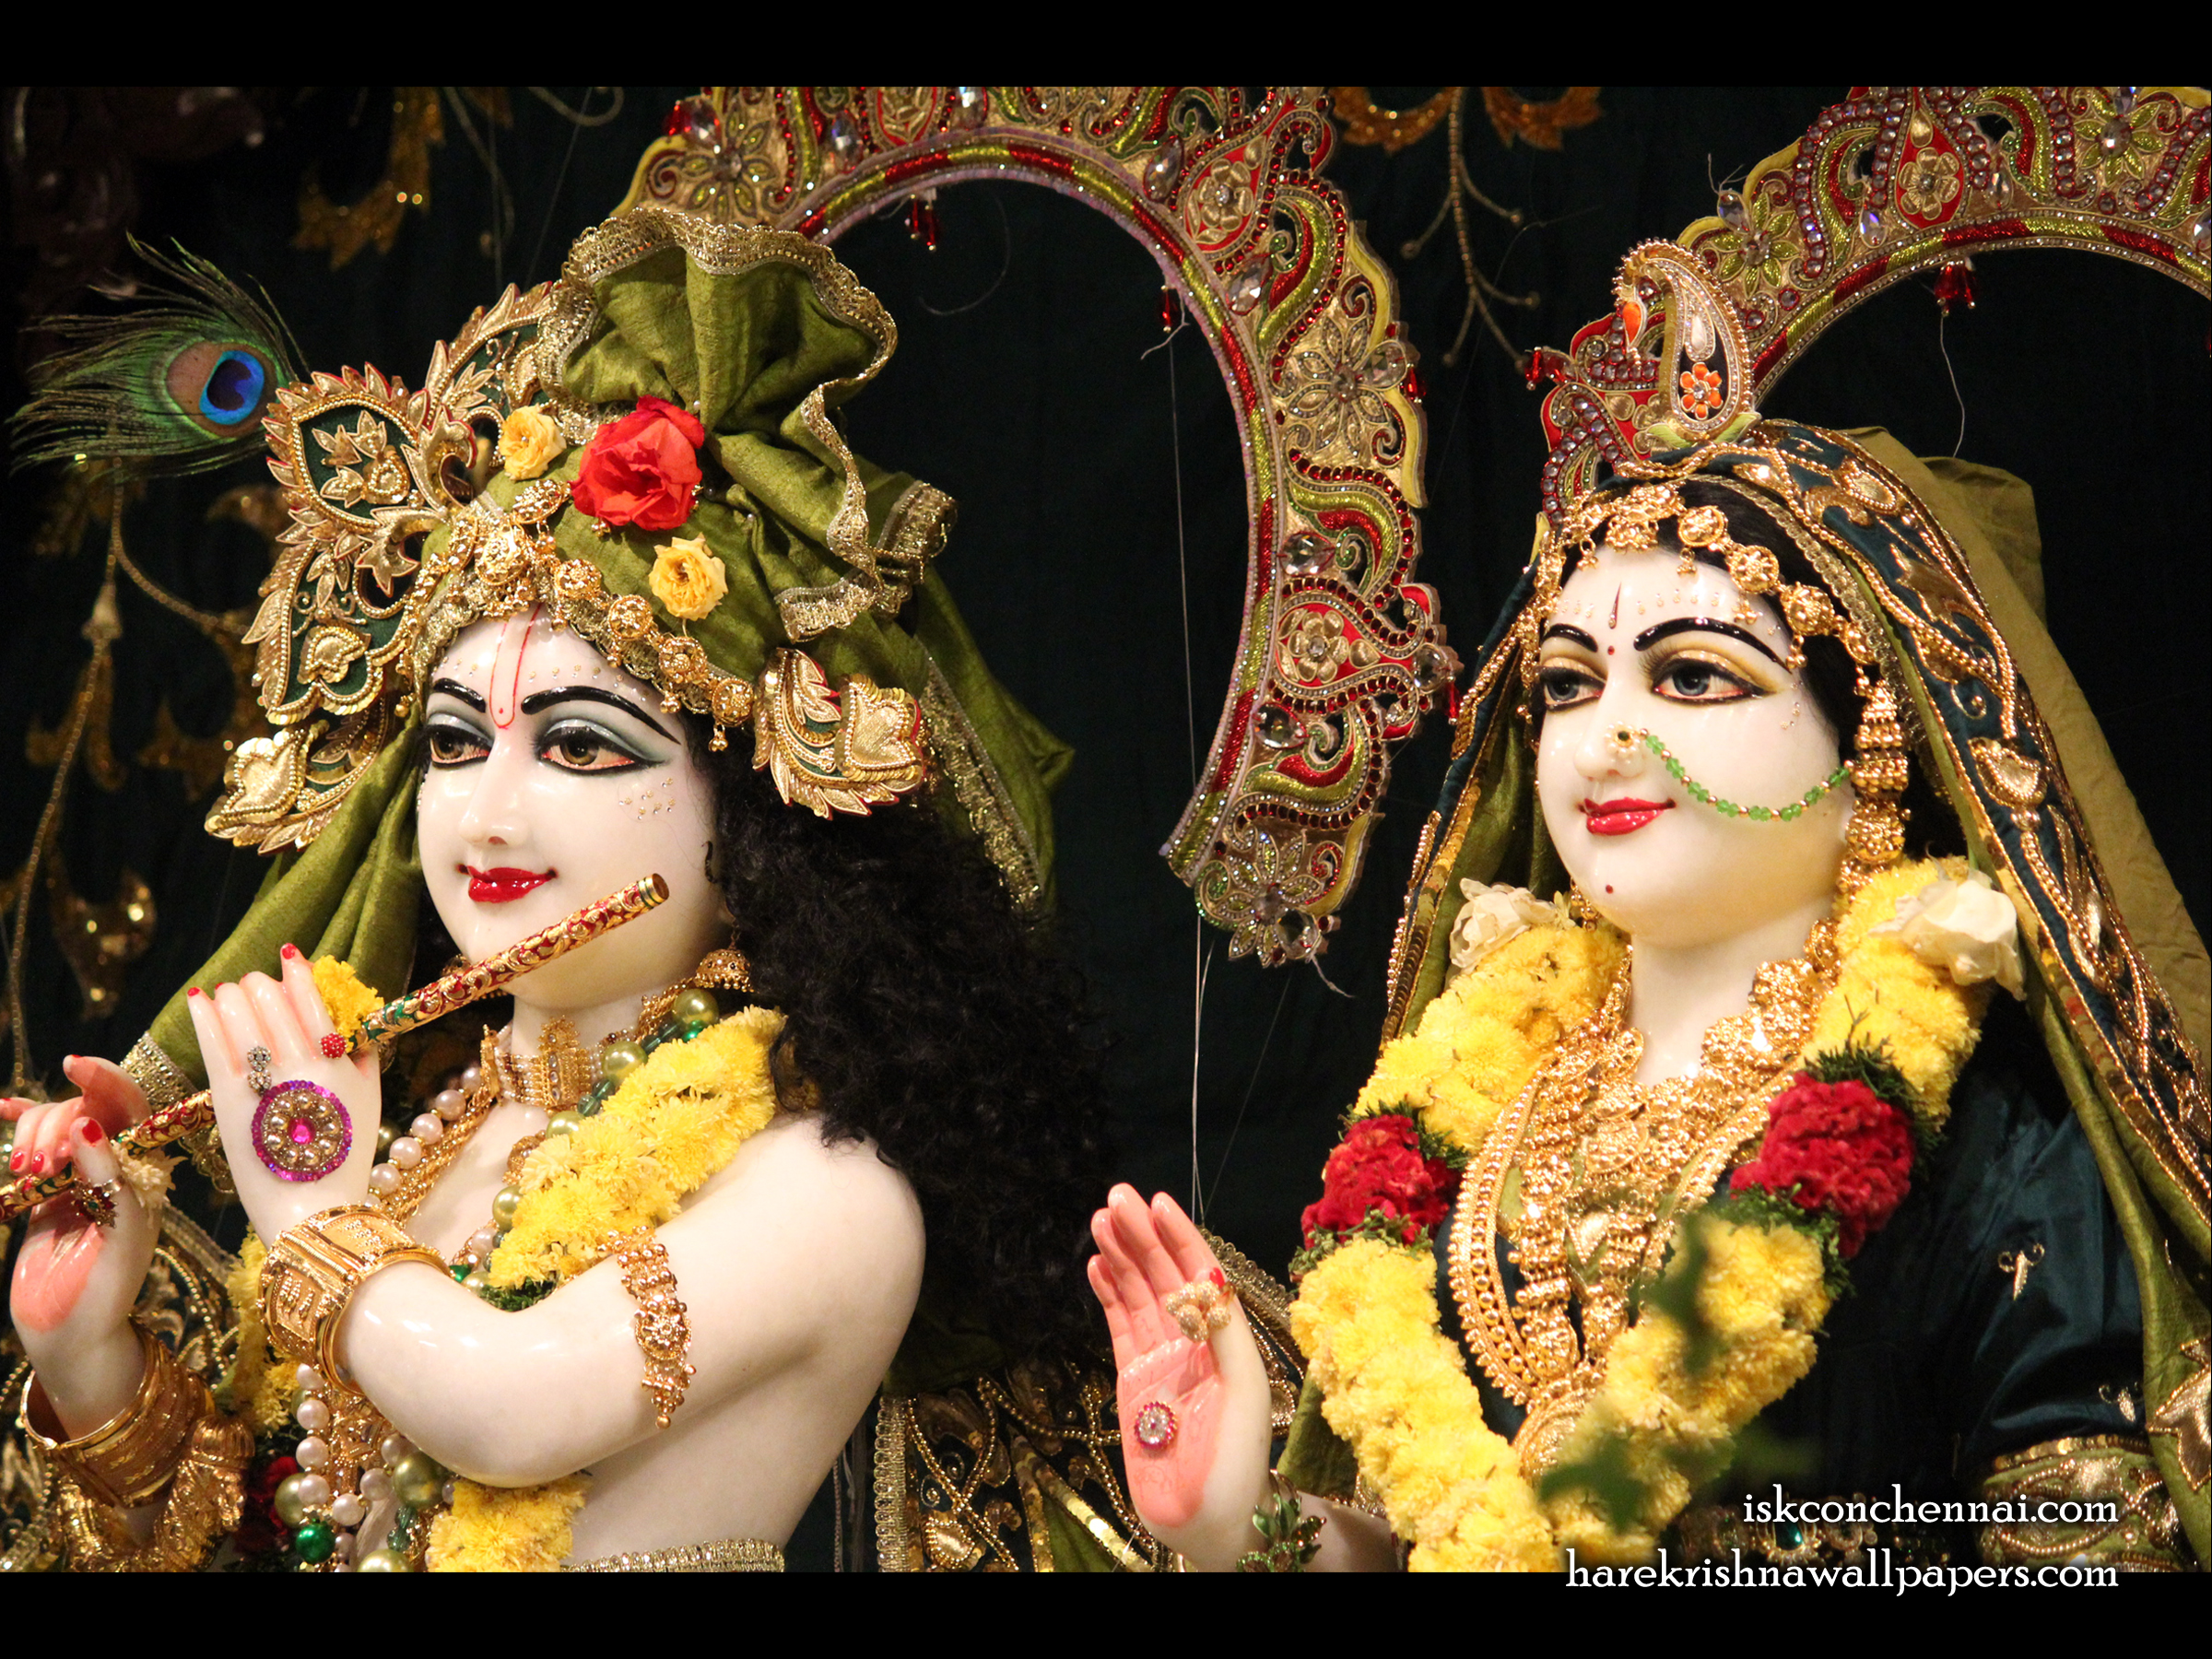 Sri Sri Radha Krishna Close up Wallpaper (004) Size 2400x1800 Download